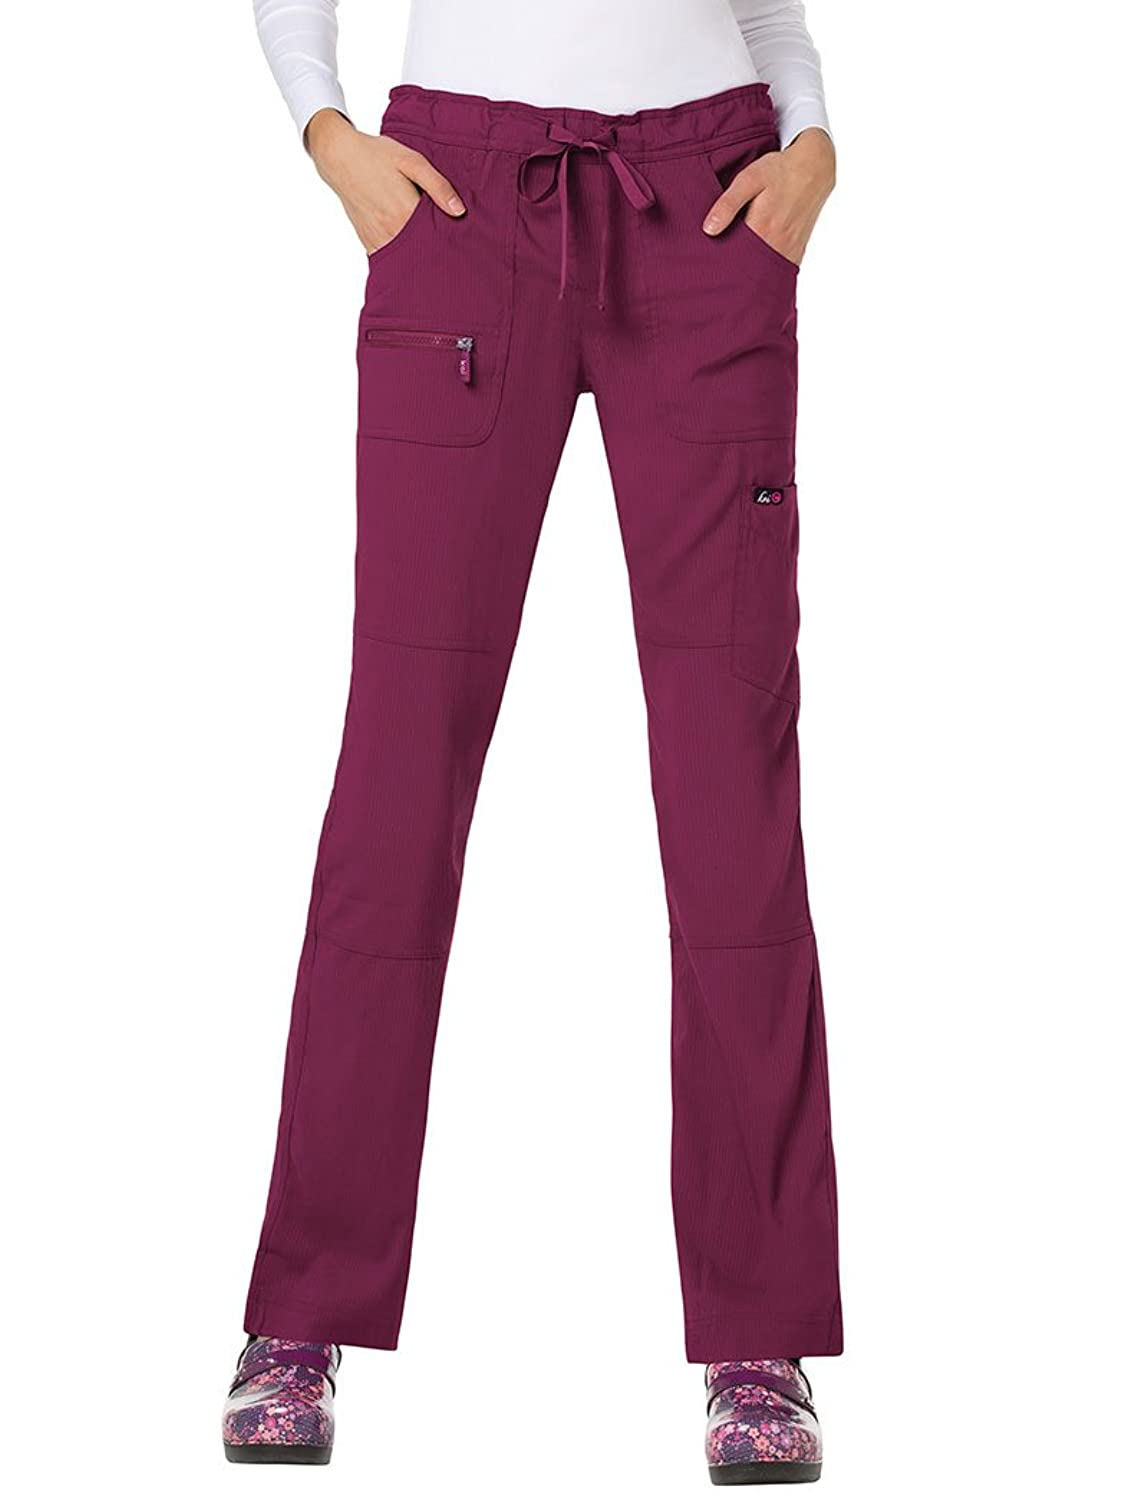 188d43669fc koi Lite\'s athletic-inspired performance stretch pants with drawstring  waist. Breathable moisture-wicking fabric moves with you and keeps you cool  and dry.